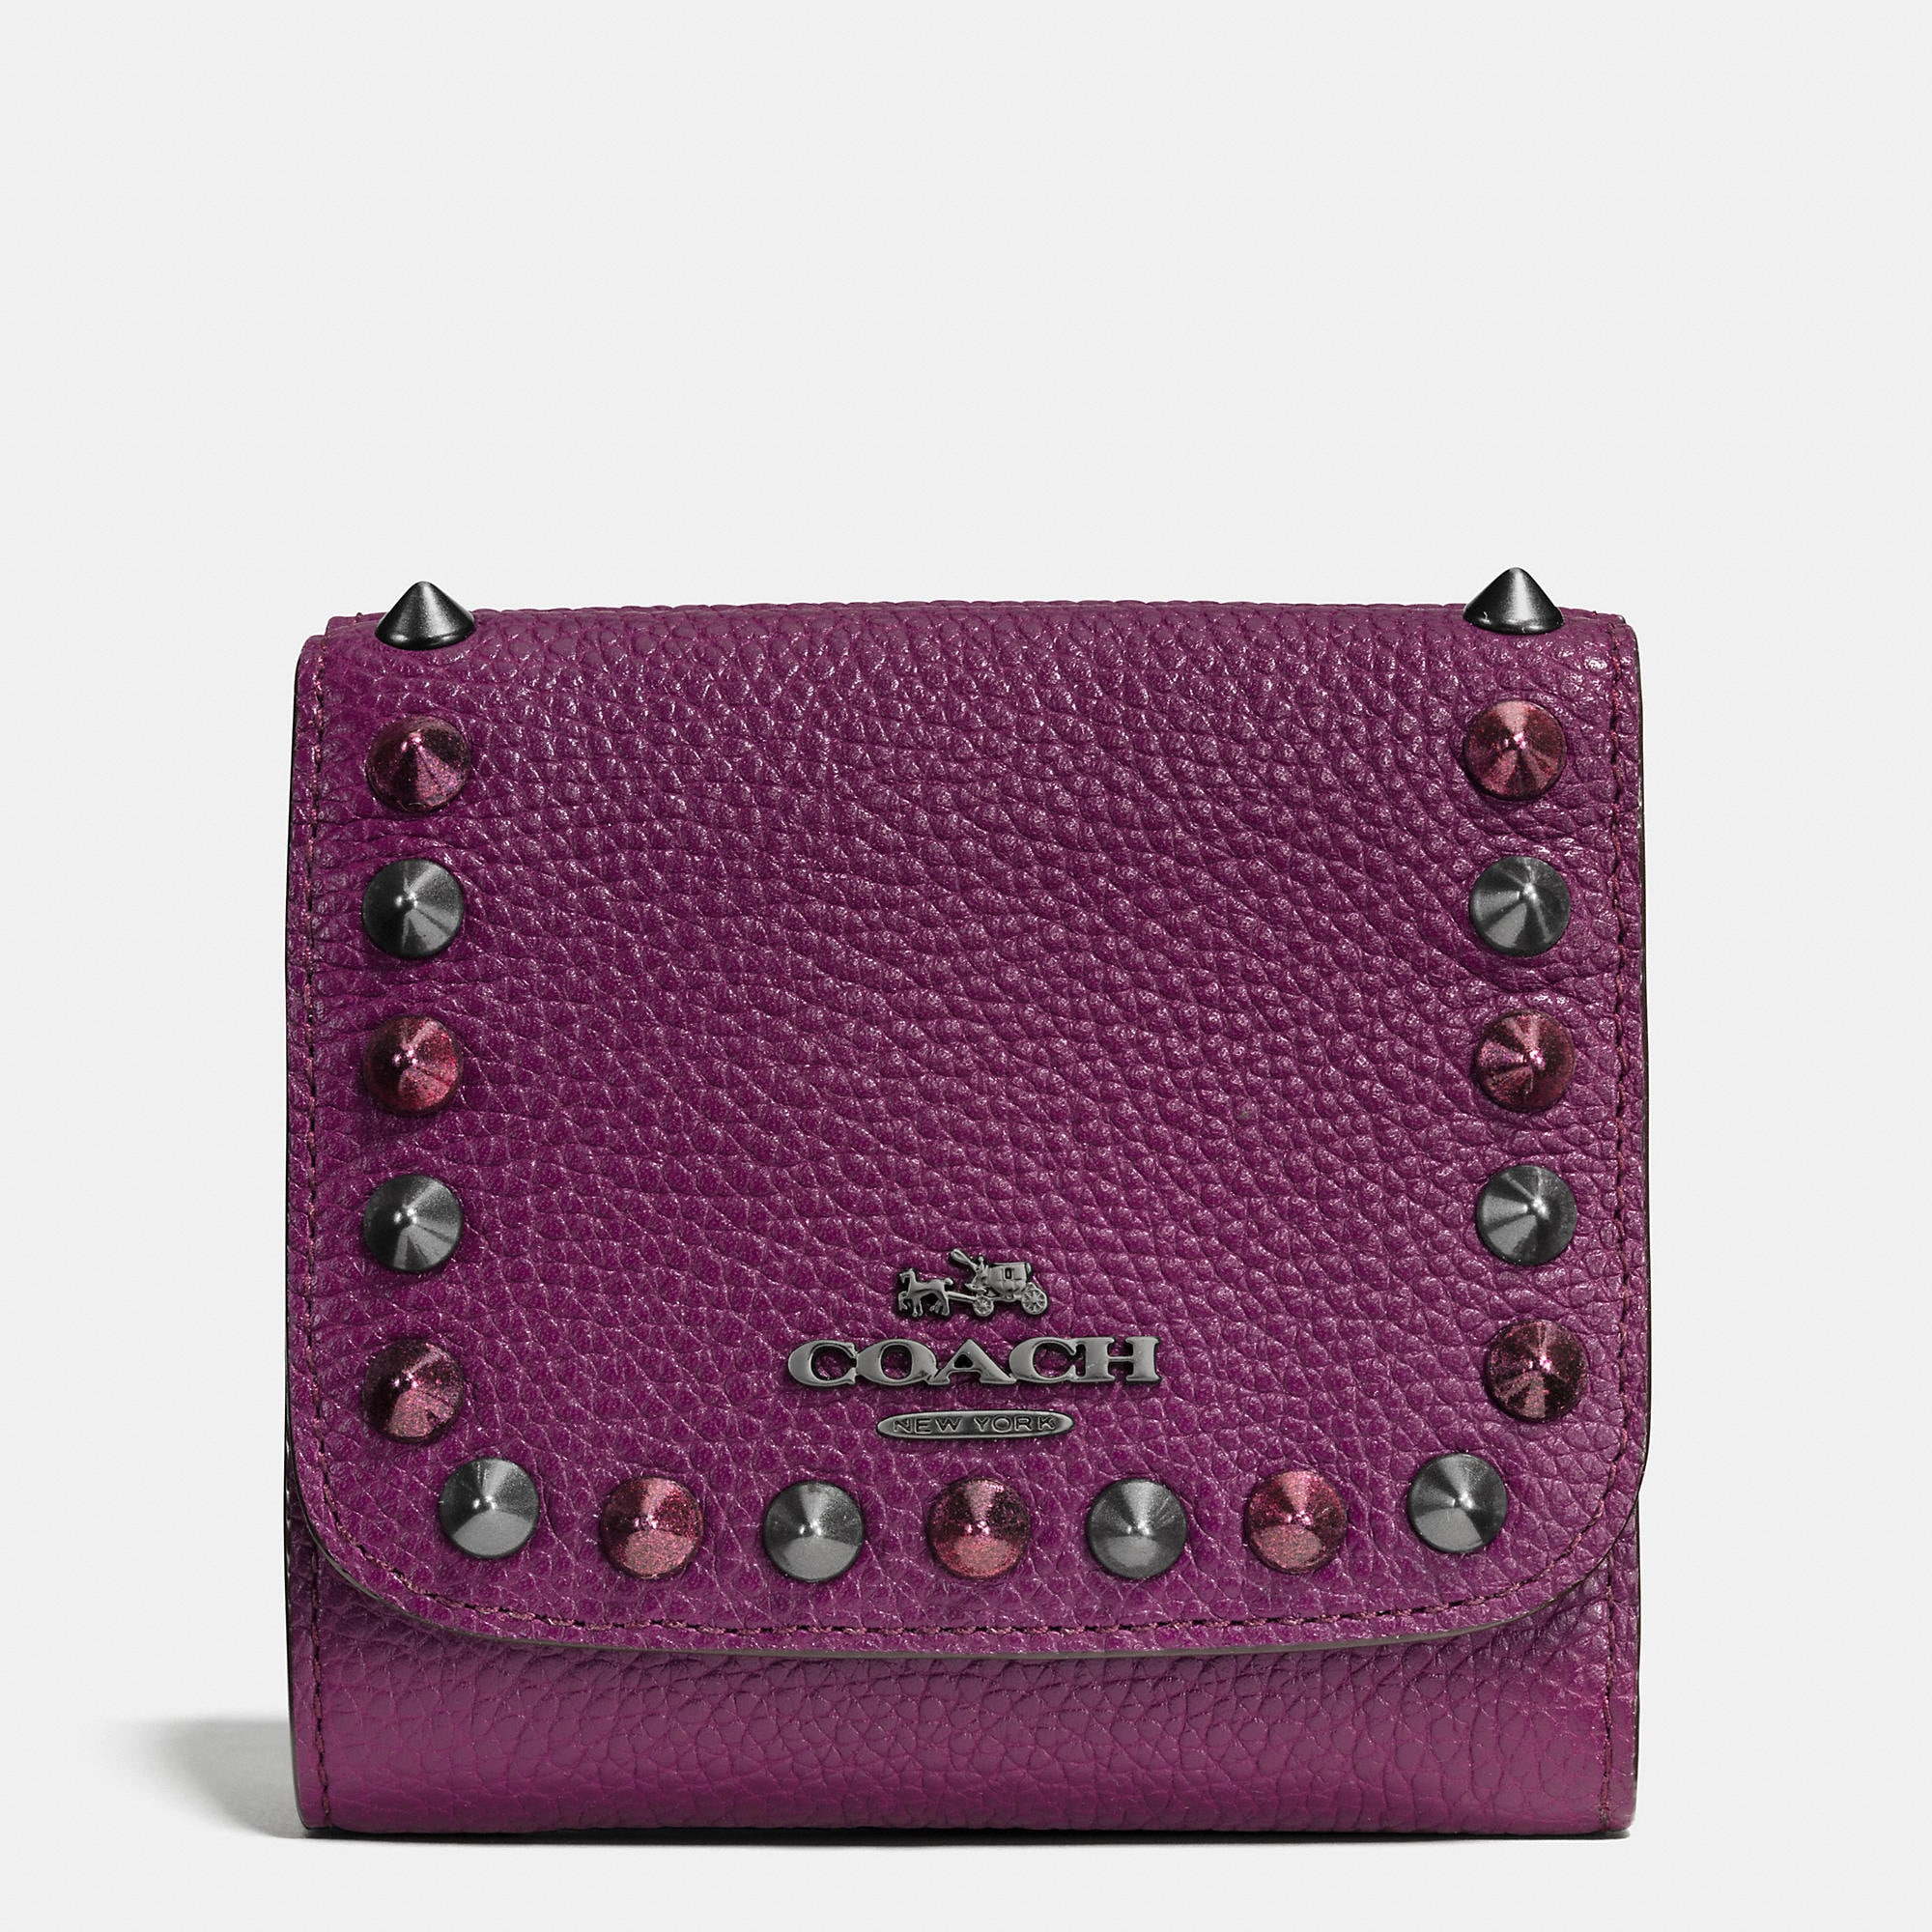 Coach Outline Studs Small Wallet In Leather